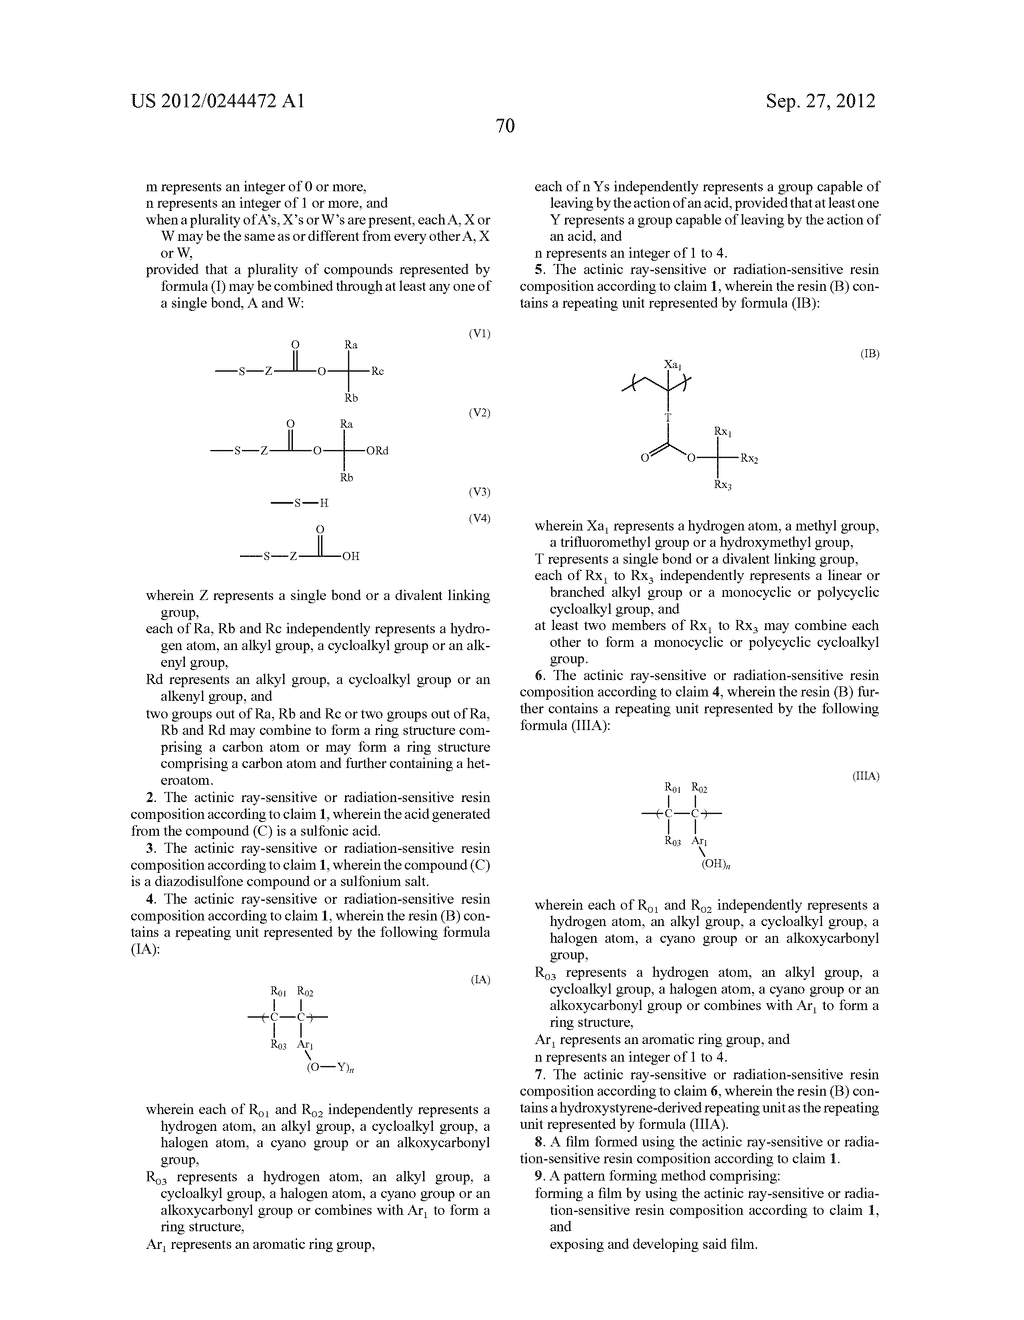 ACTINIC RAY-SENSITIVE OR RADIATION-SENSITIVE RESIN COMPOSITION, FILM     FORMED USING THE COMPOSITION AND PATTERN FORMING METHOD USING THE SAME - diagram, schematic, and image 71